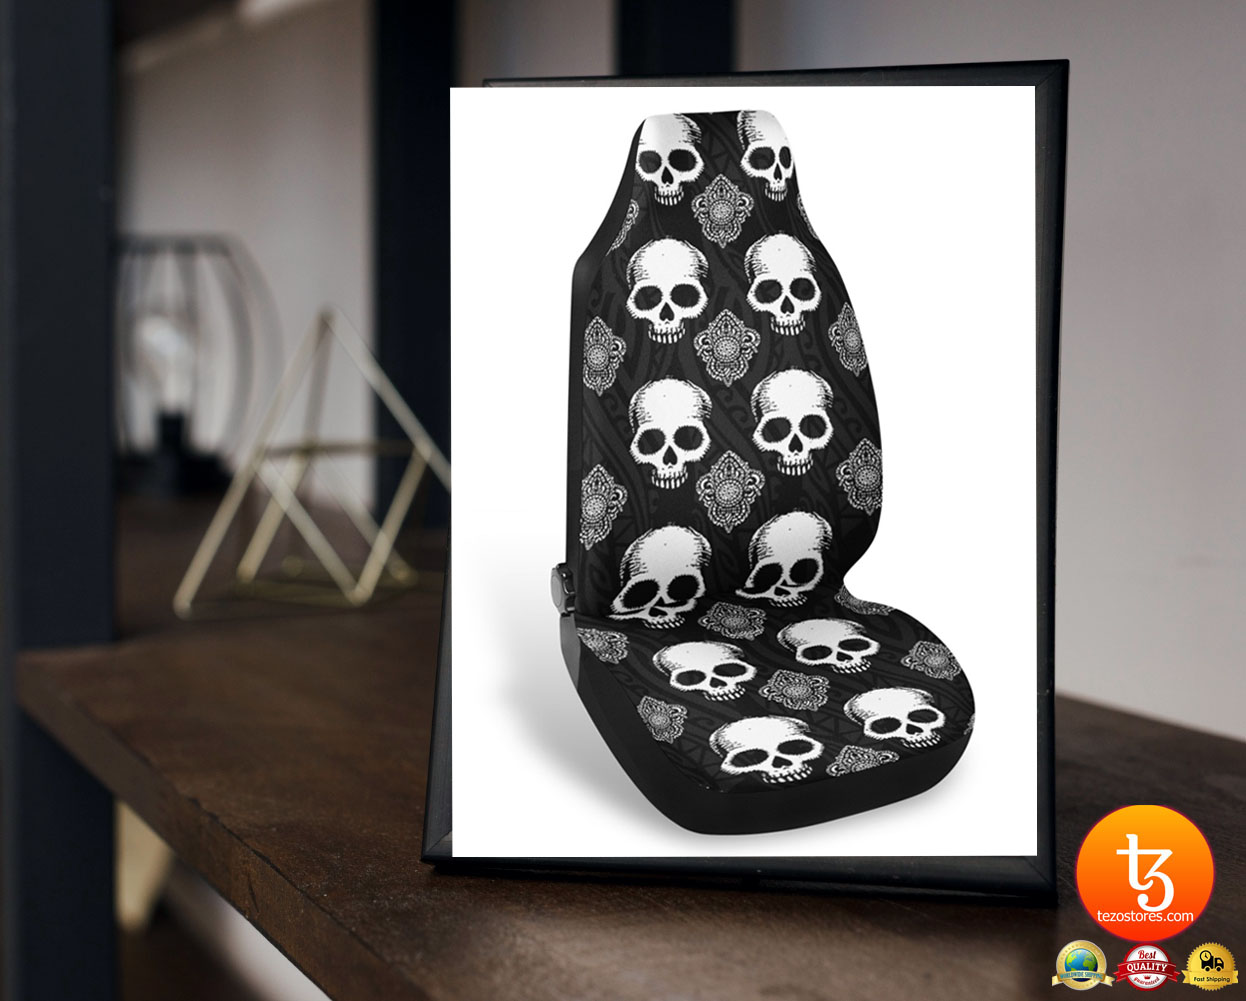 Goth skull car seat covers 23